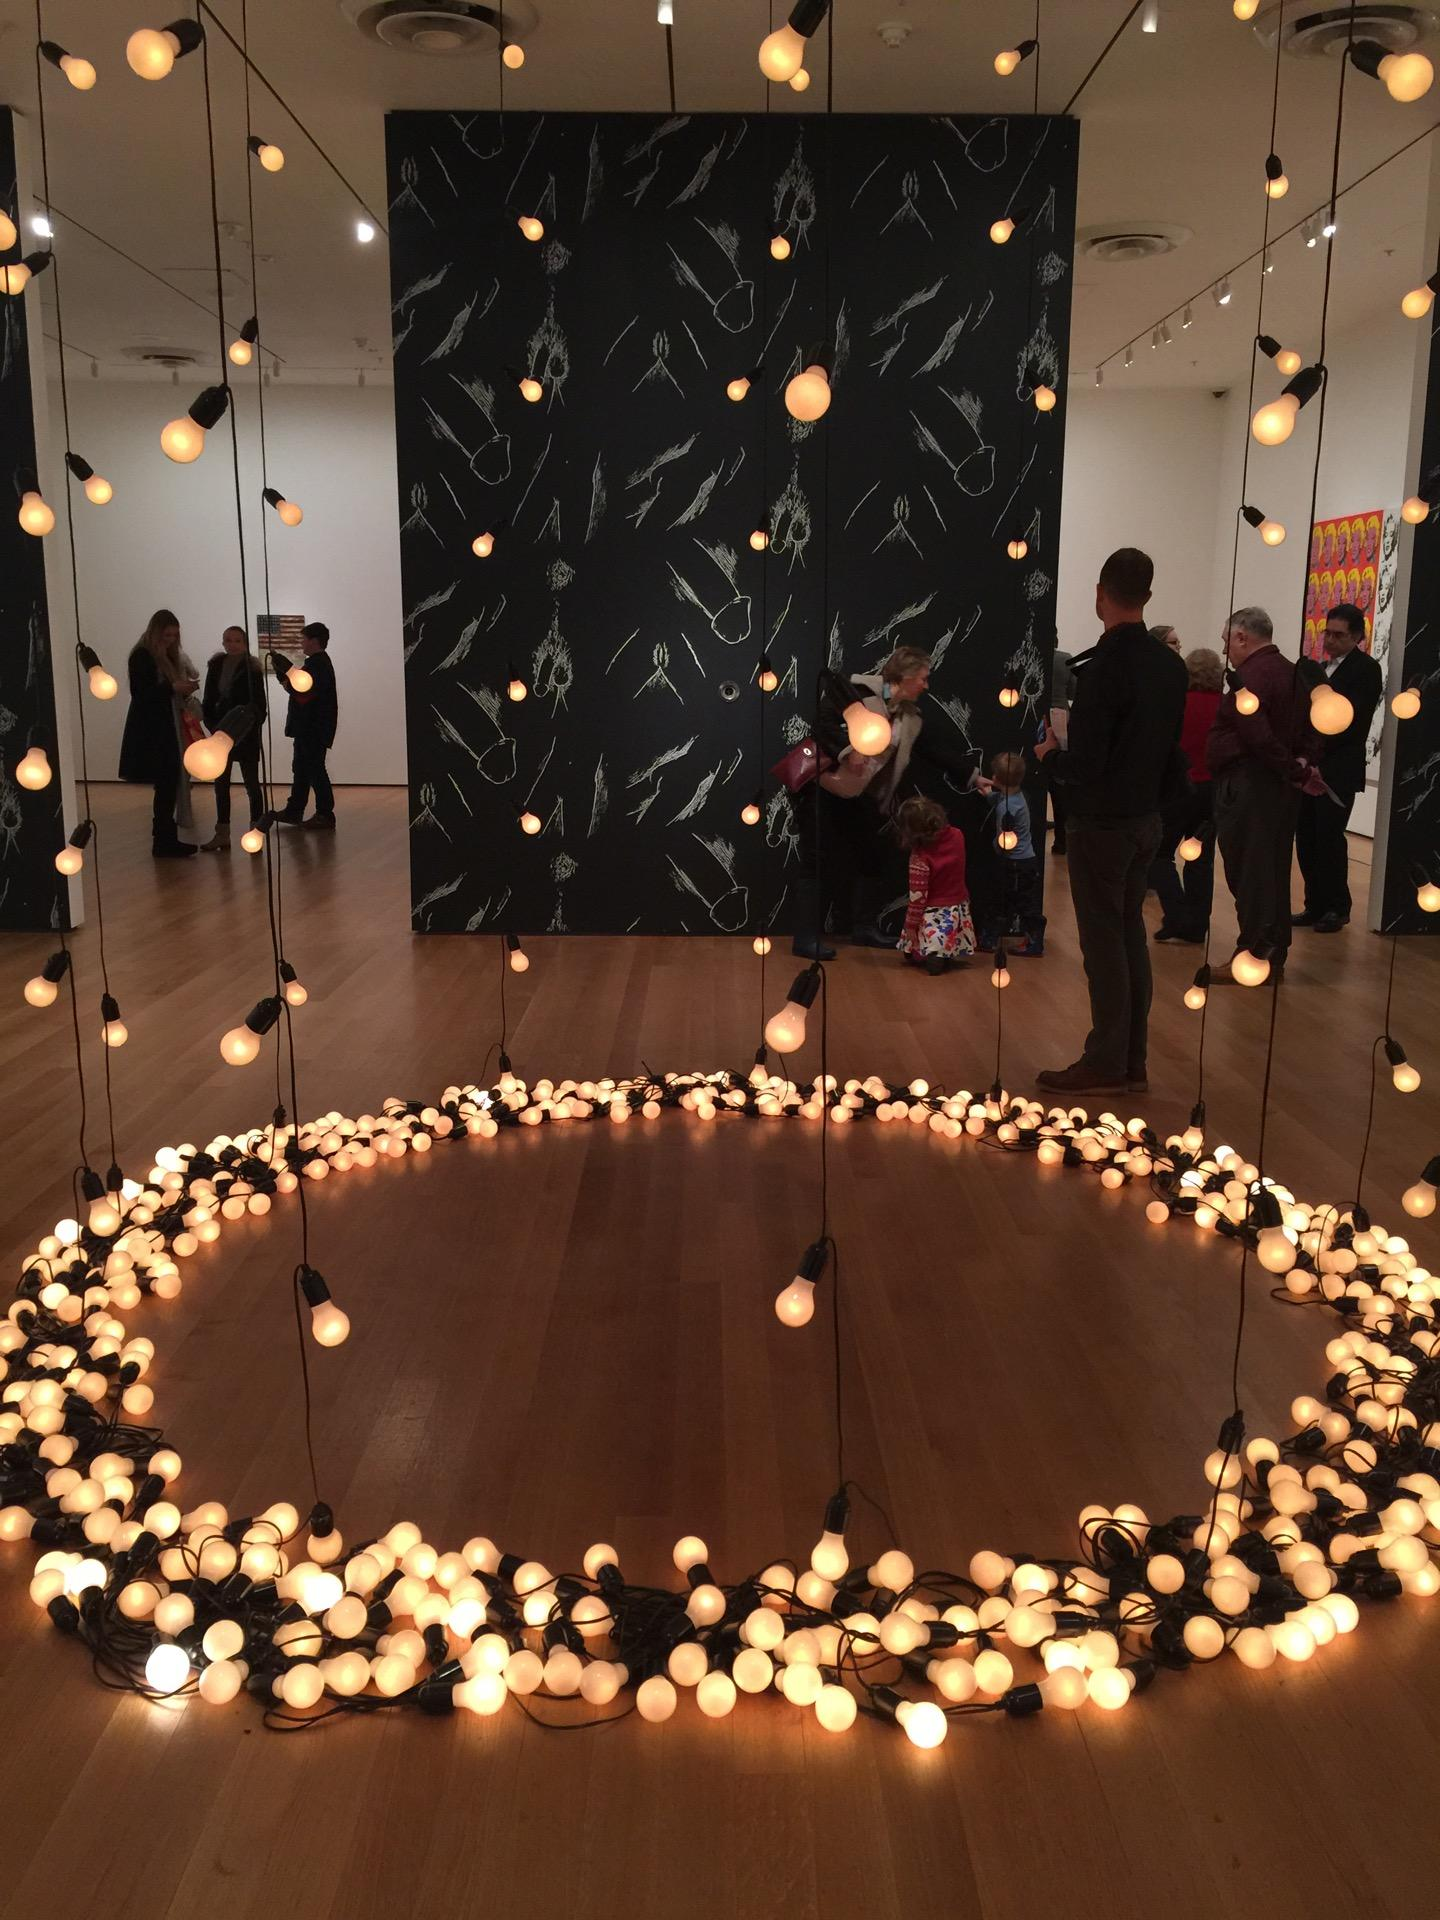 Reasons to visit New York - The Museum of Modern Art (MoMA)